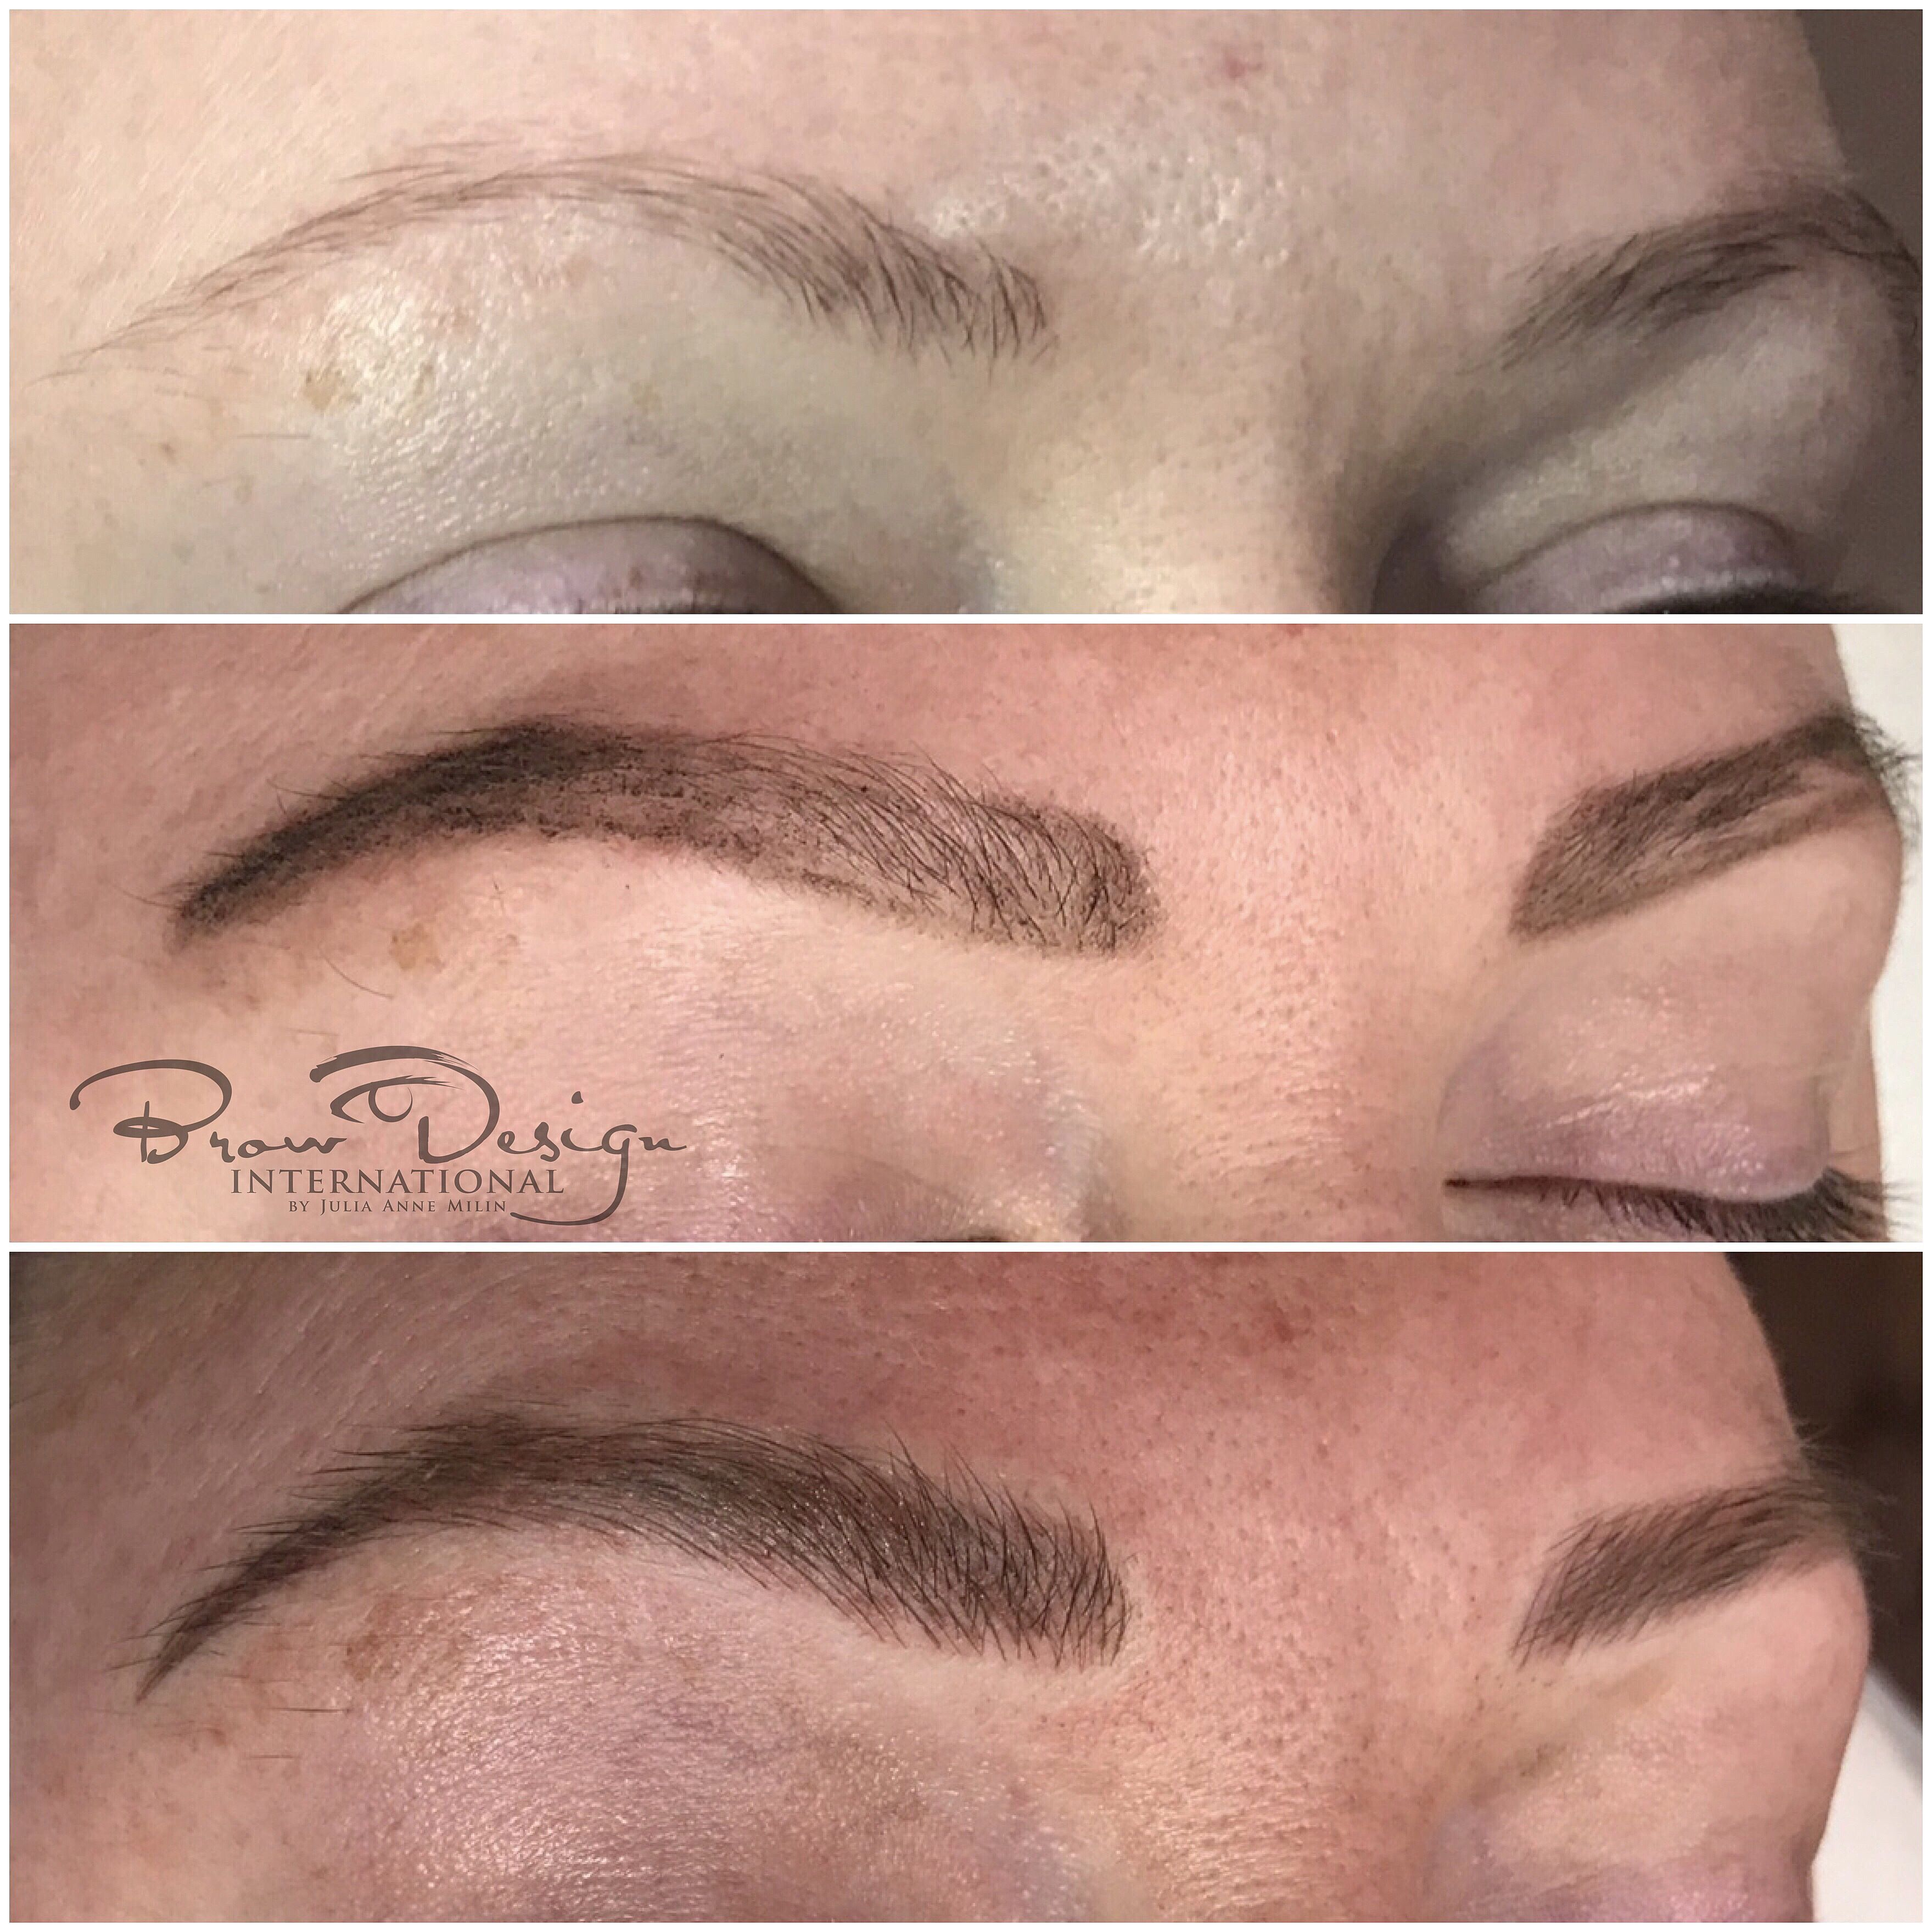 This is what the microblading process looks like before